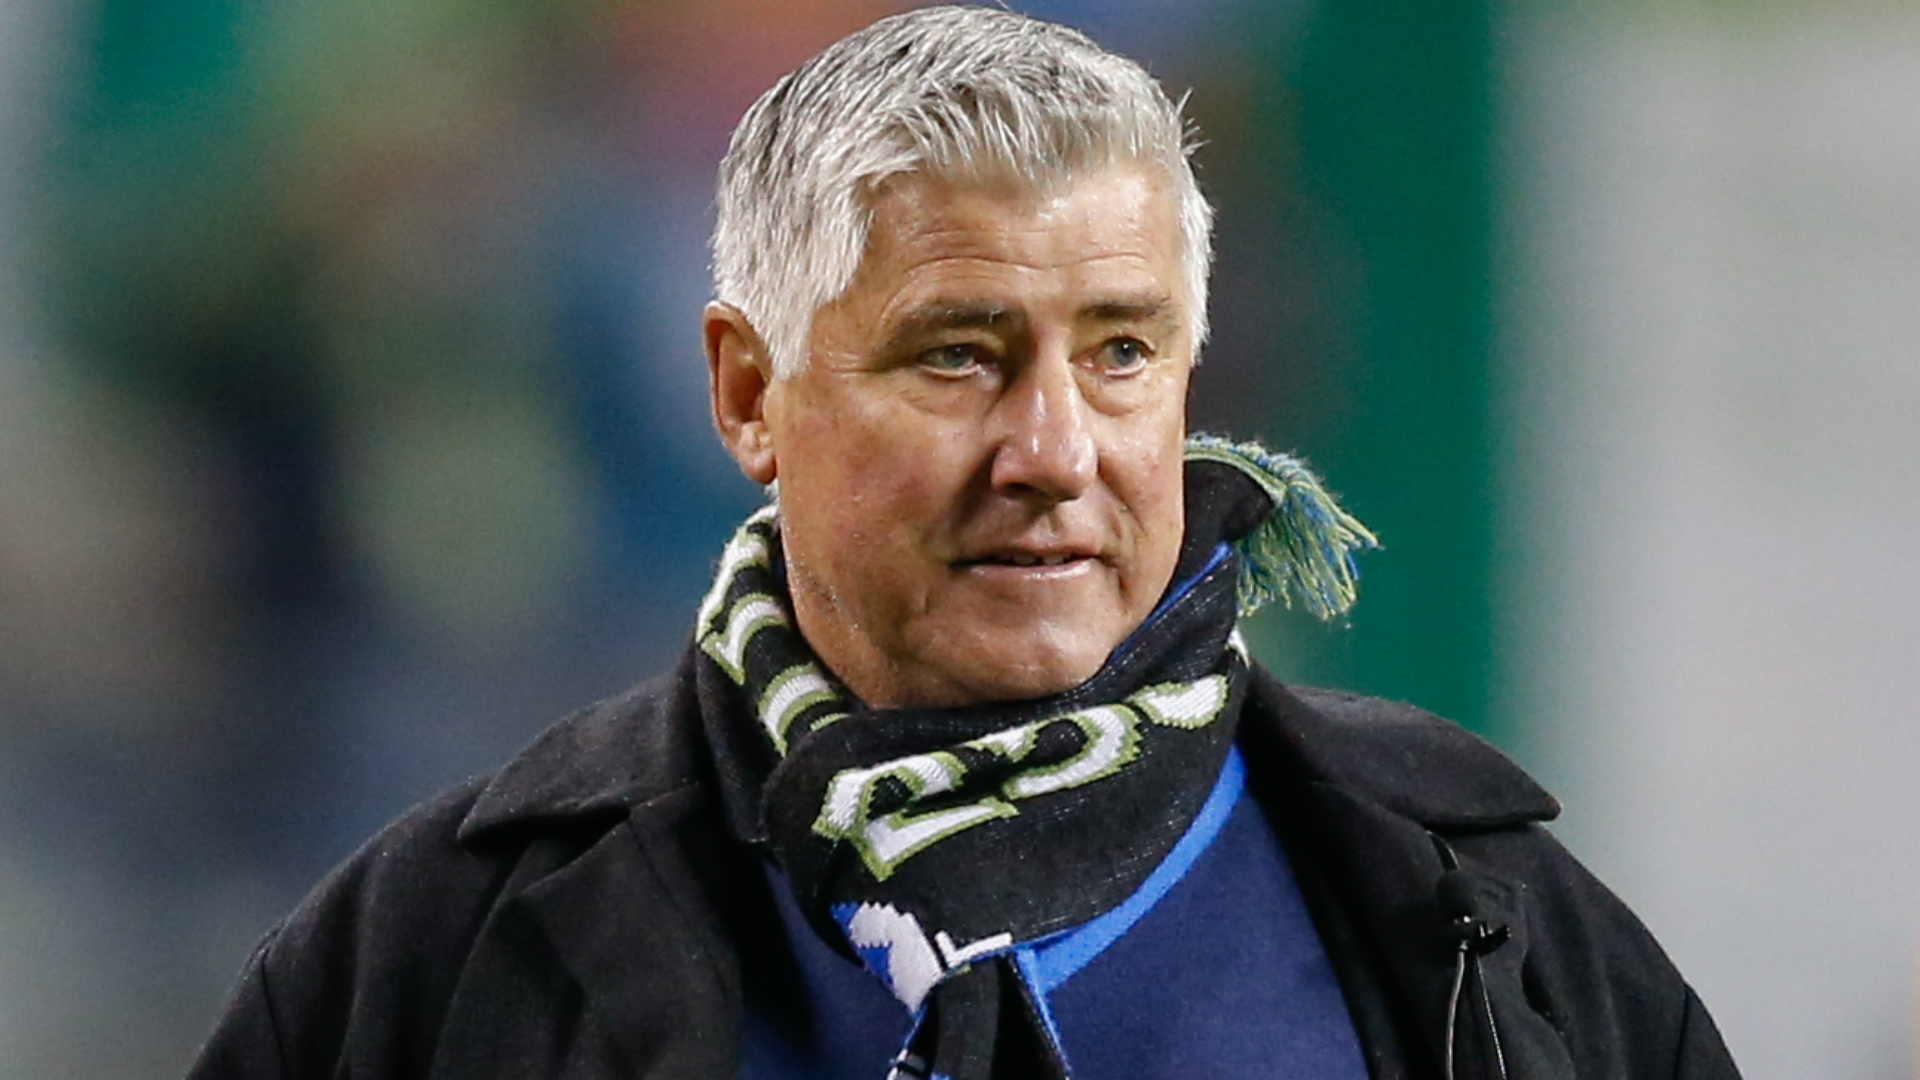 MLS's all-time coaching victor, Hall of Famer Sigi Schmid died on Christmas